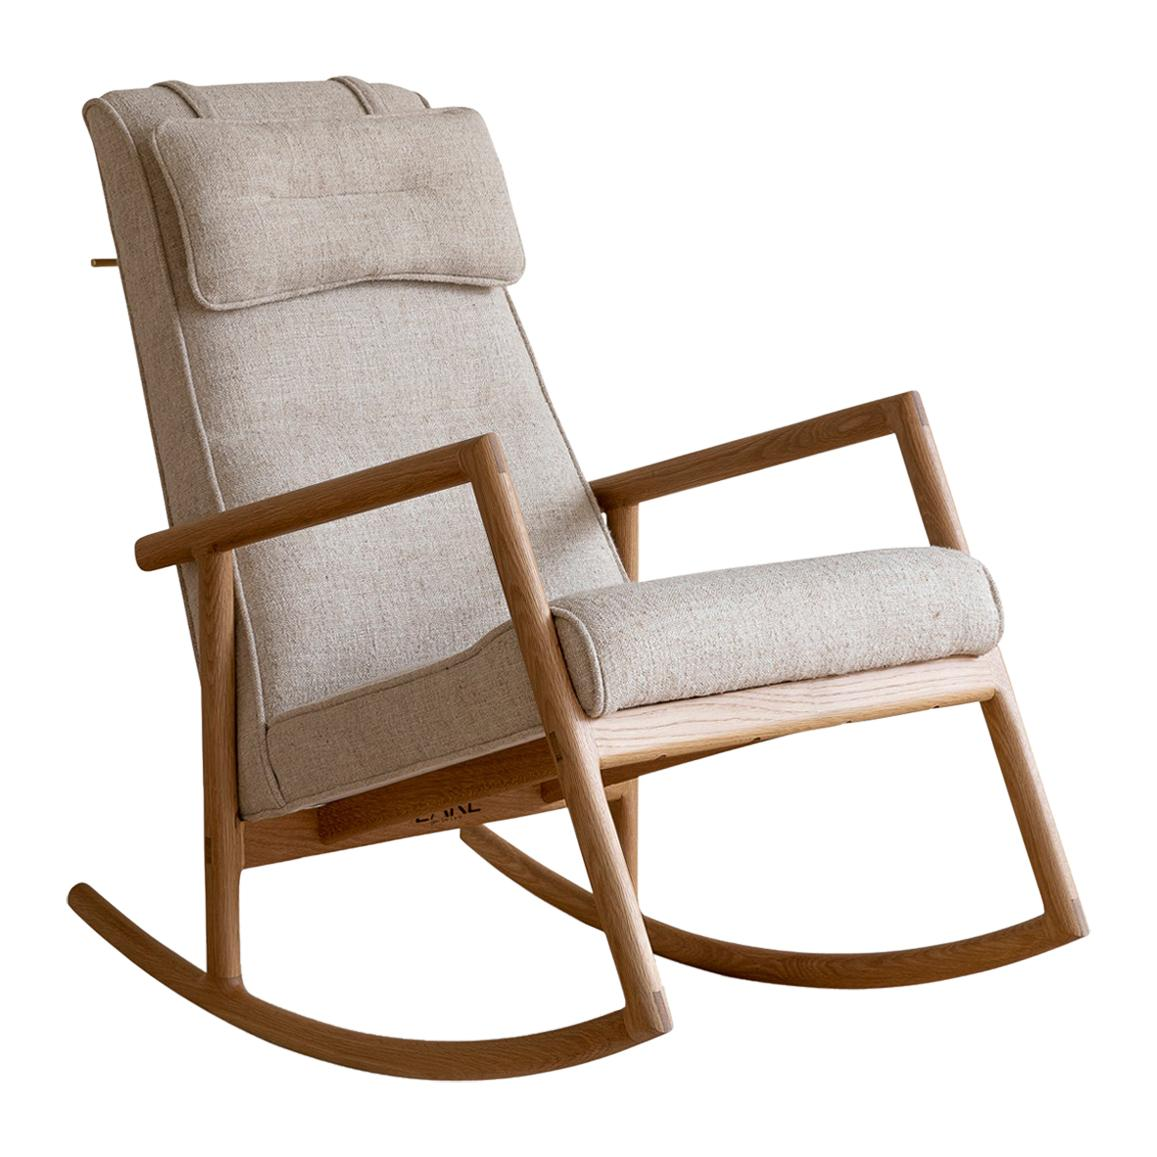 Earl White Oak, Ivory Textured Linen Moresby Rocking Chair